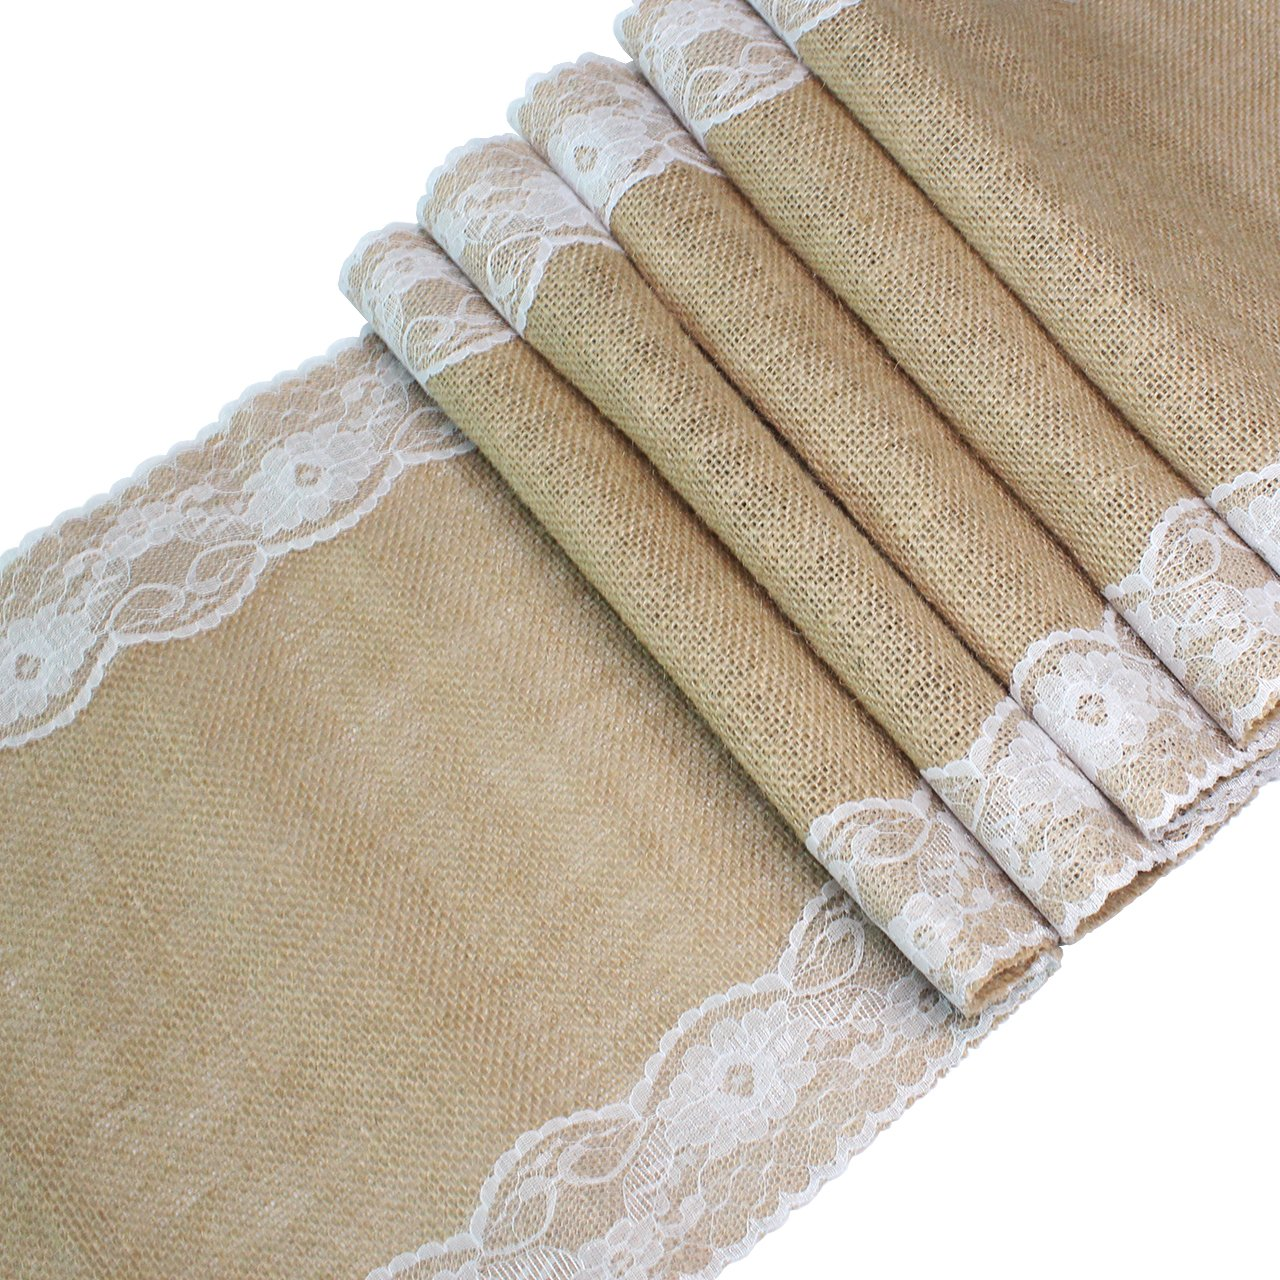 Table Runner Burlap with Vintage Lace Hessian Jute Table Runners for Country Outdoor Rustic Wedding Party Decoration, 12 x 108 Inch Volare-HK